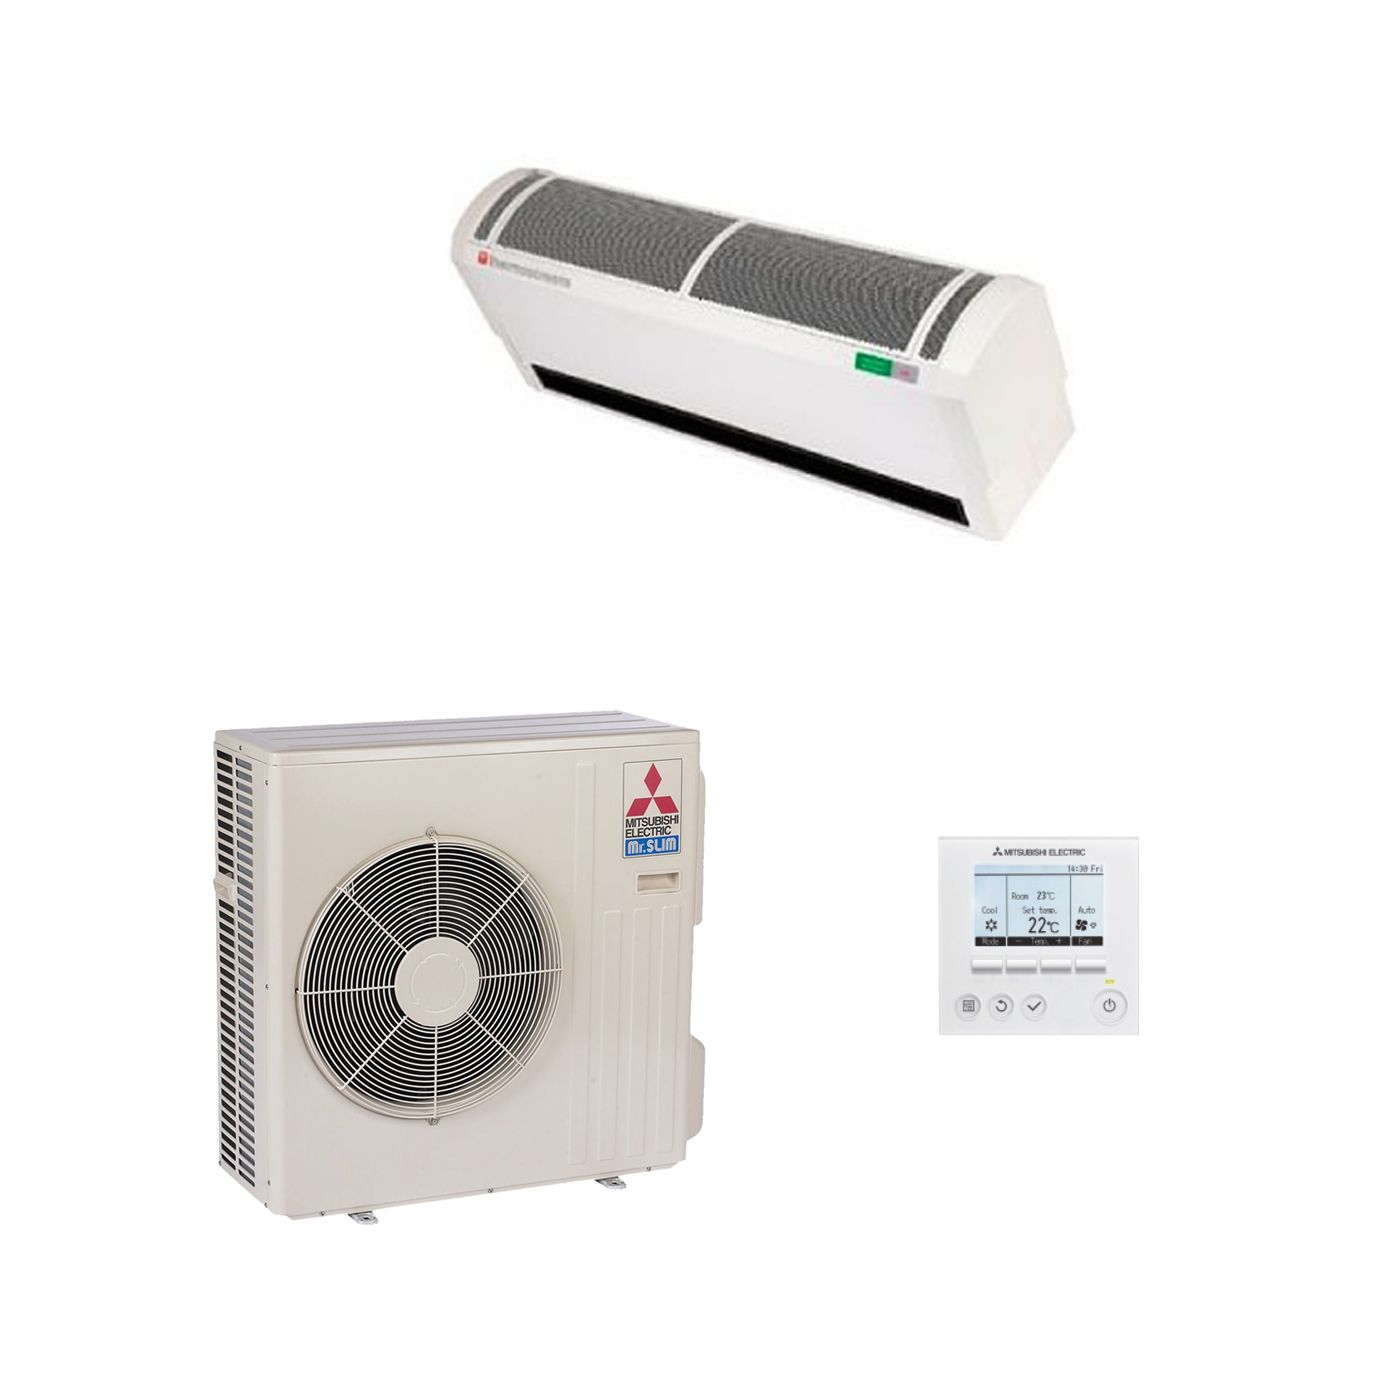 Electric Air Curtain Heaters Chameleon The Architectural: Mitsubishi Electric Heat Pump Air Curtain HP1000 DXE 8kW